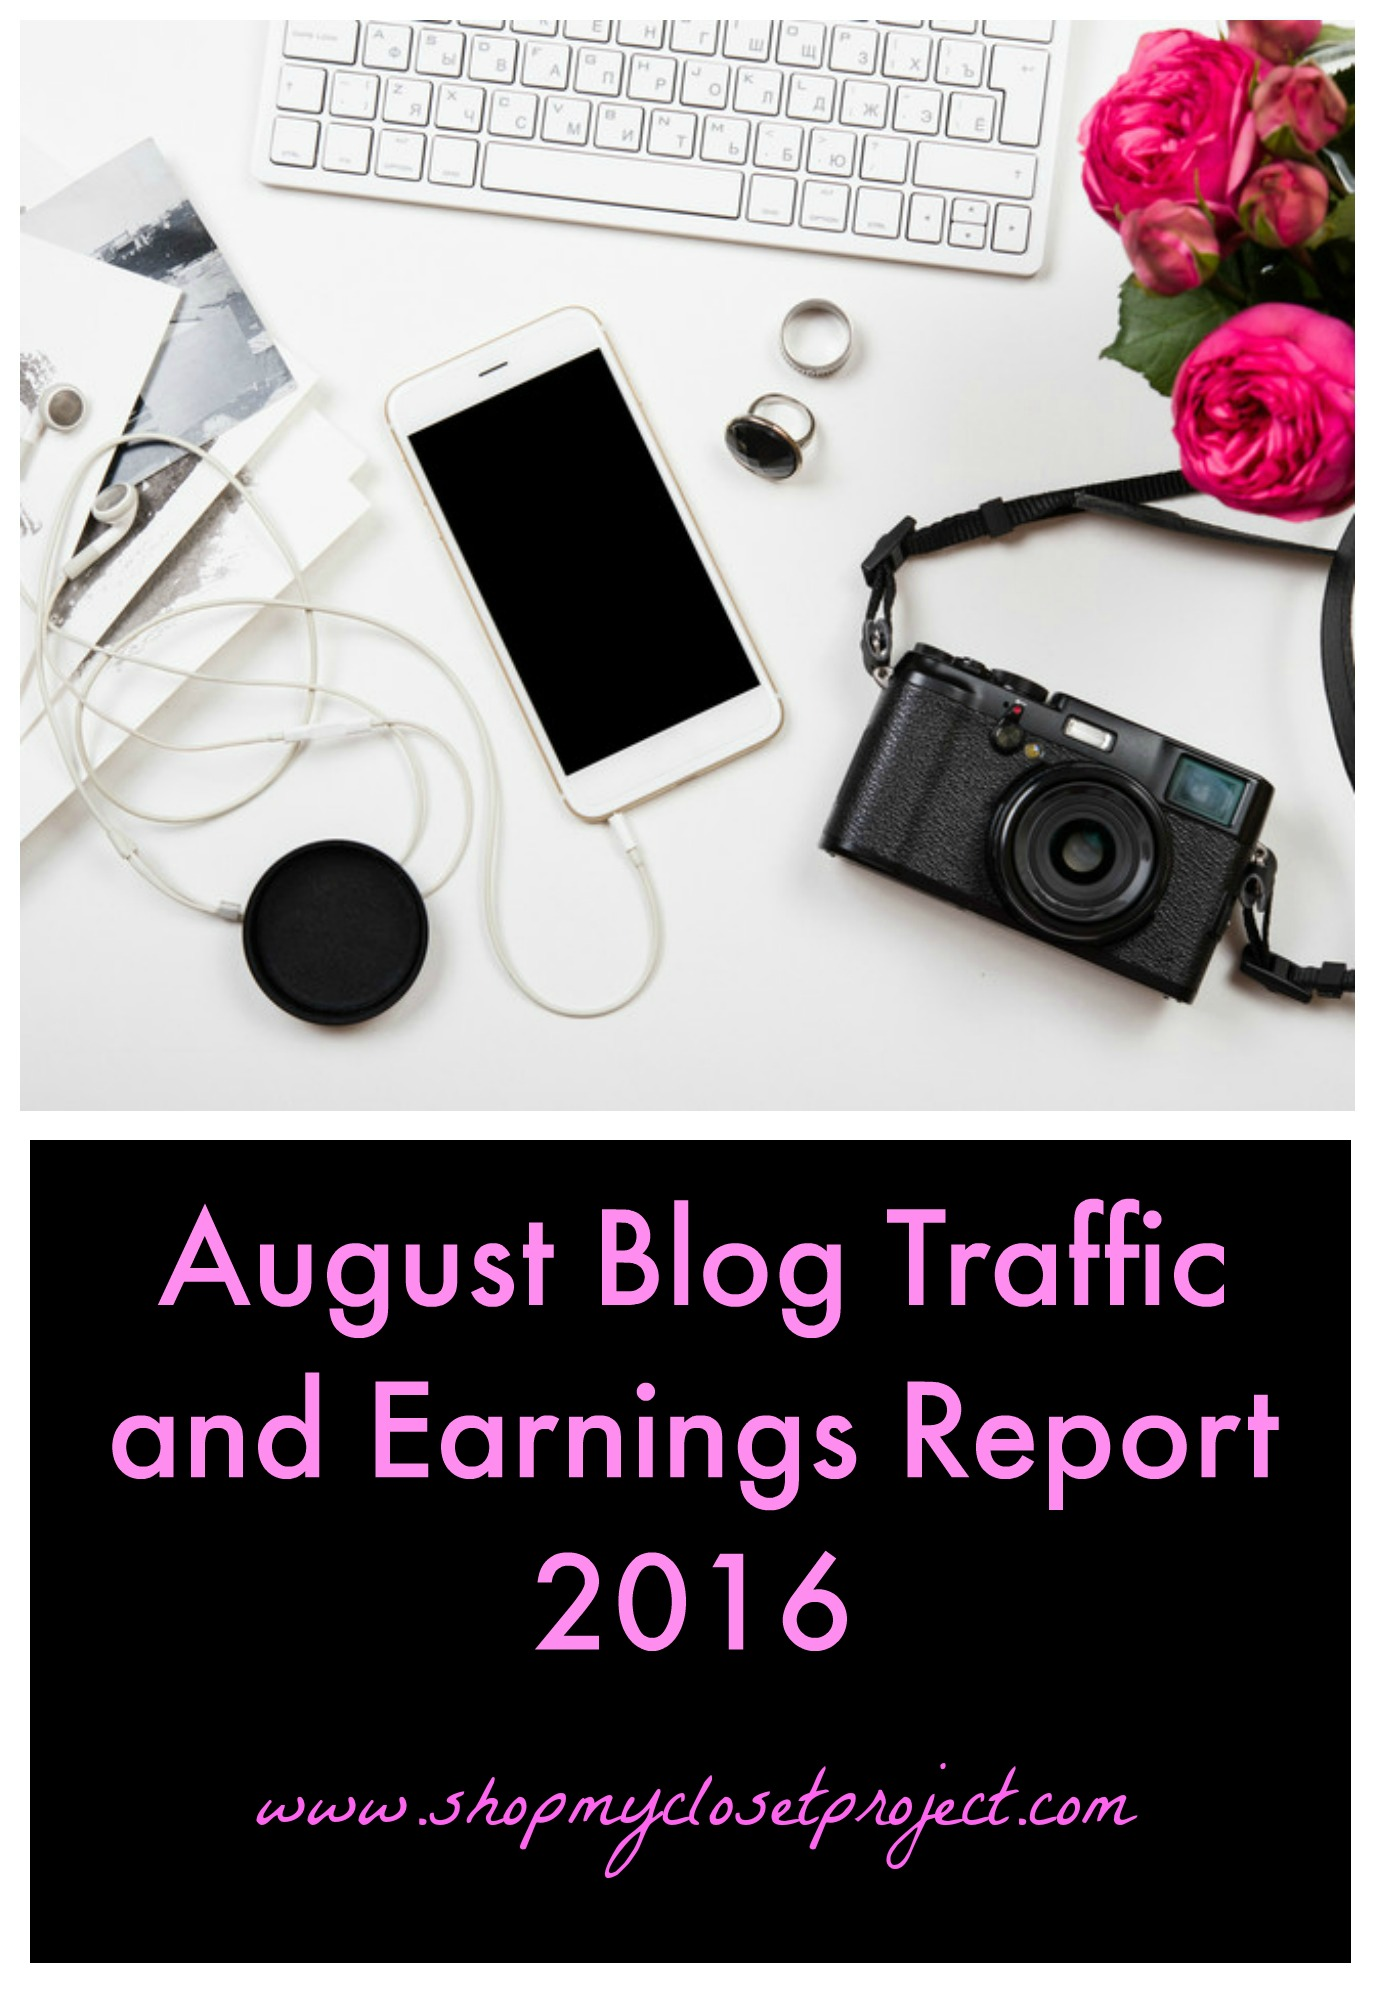 August Blog Traffic and Earnings Report 2016